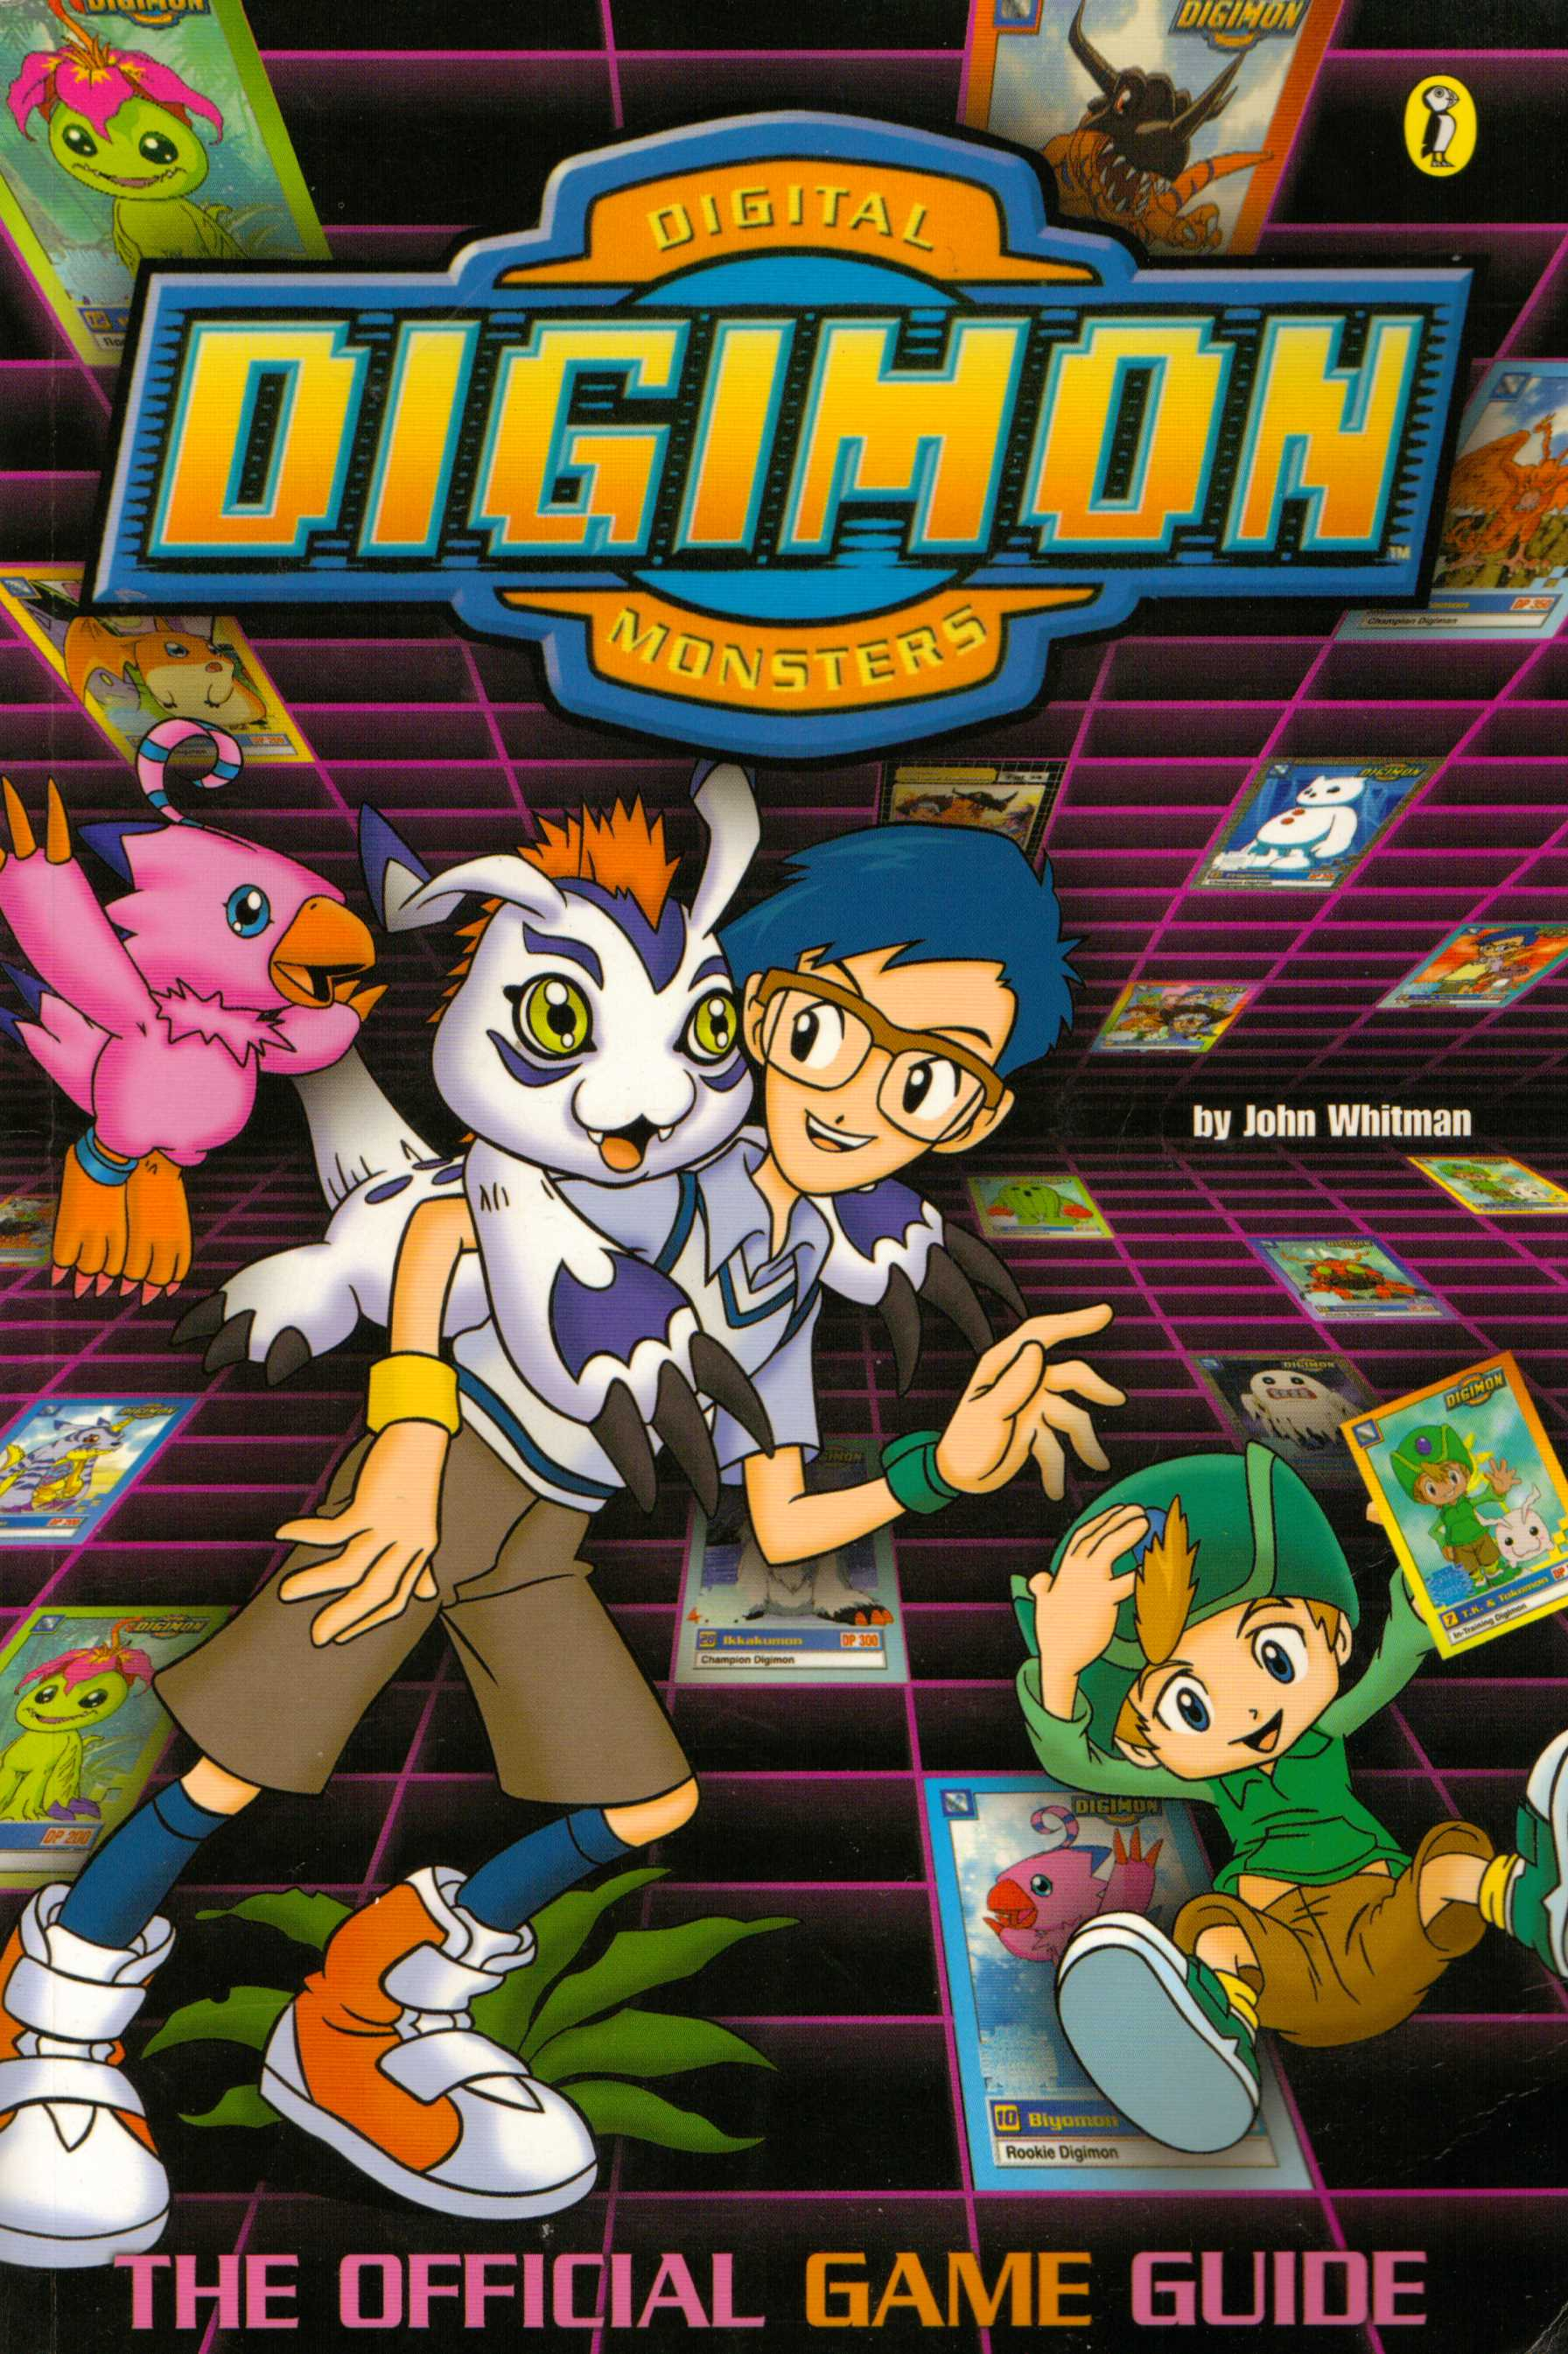 File:Digimon game guide.jpg